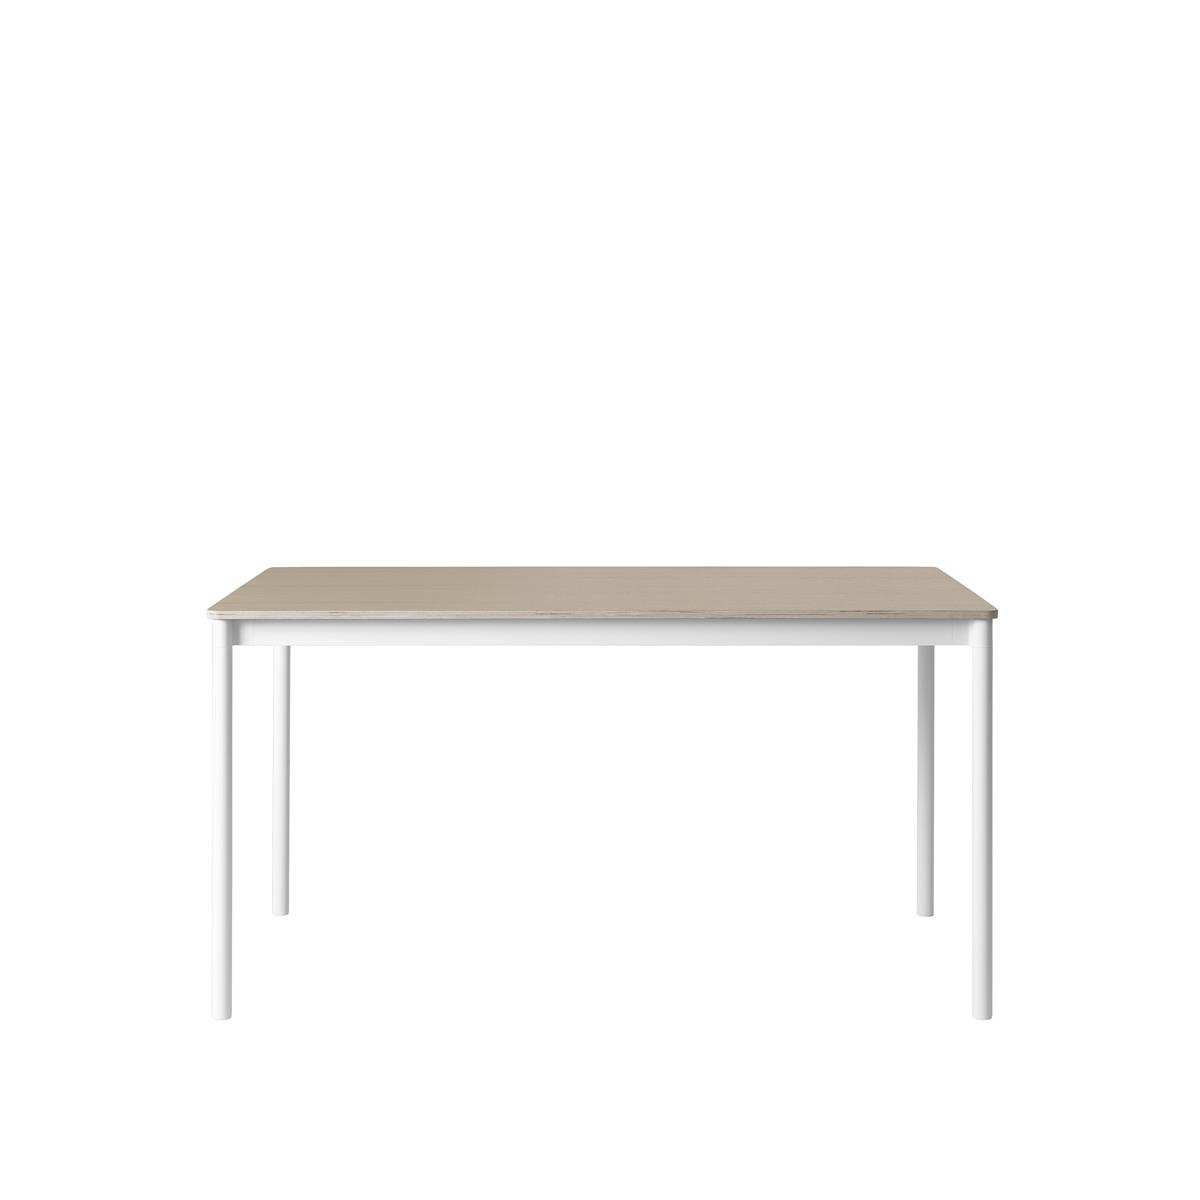 Base Table / 140X70 Oak Veneer - Plywood edges